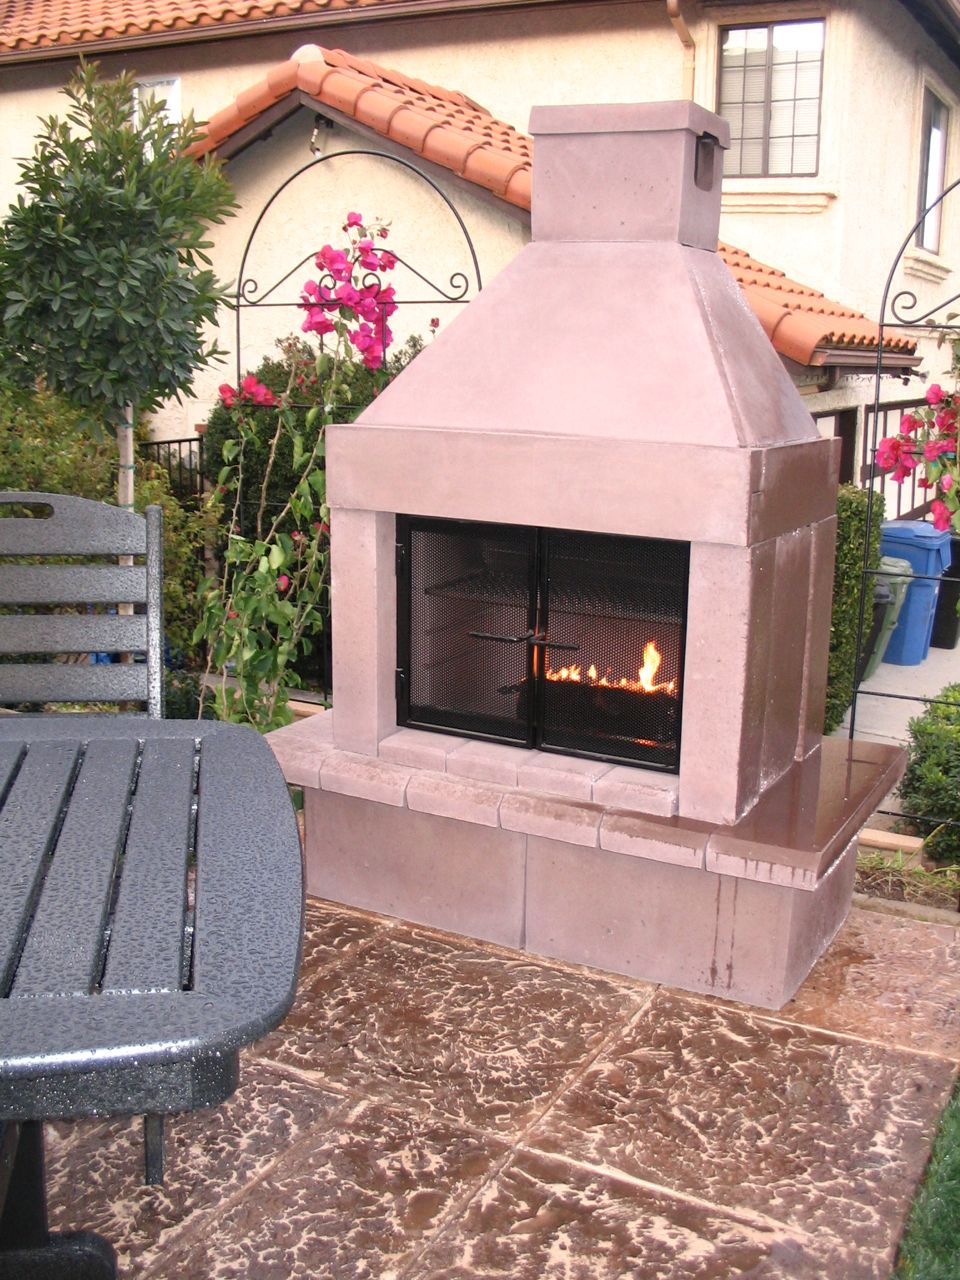 diy modular outdoor fireplace by mirage stone eden makers blog by rh edenmakersblog com mirage stone fireplace dimensions mirage stone fireplace dimensions